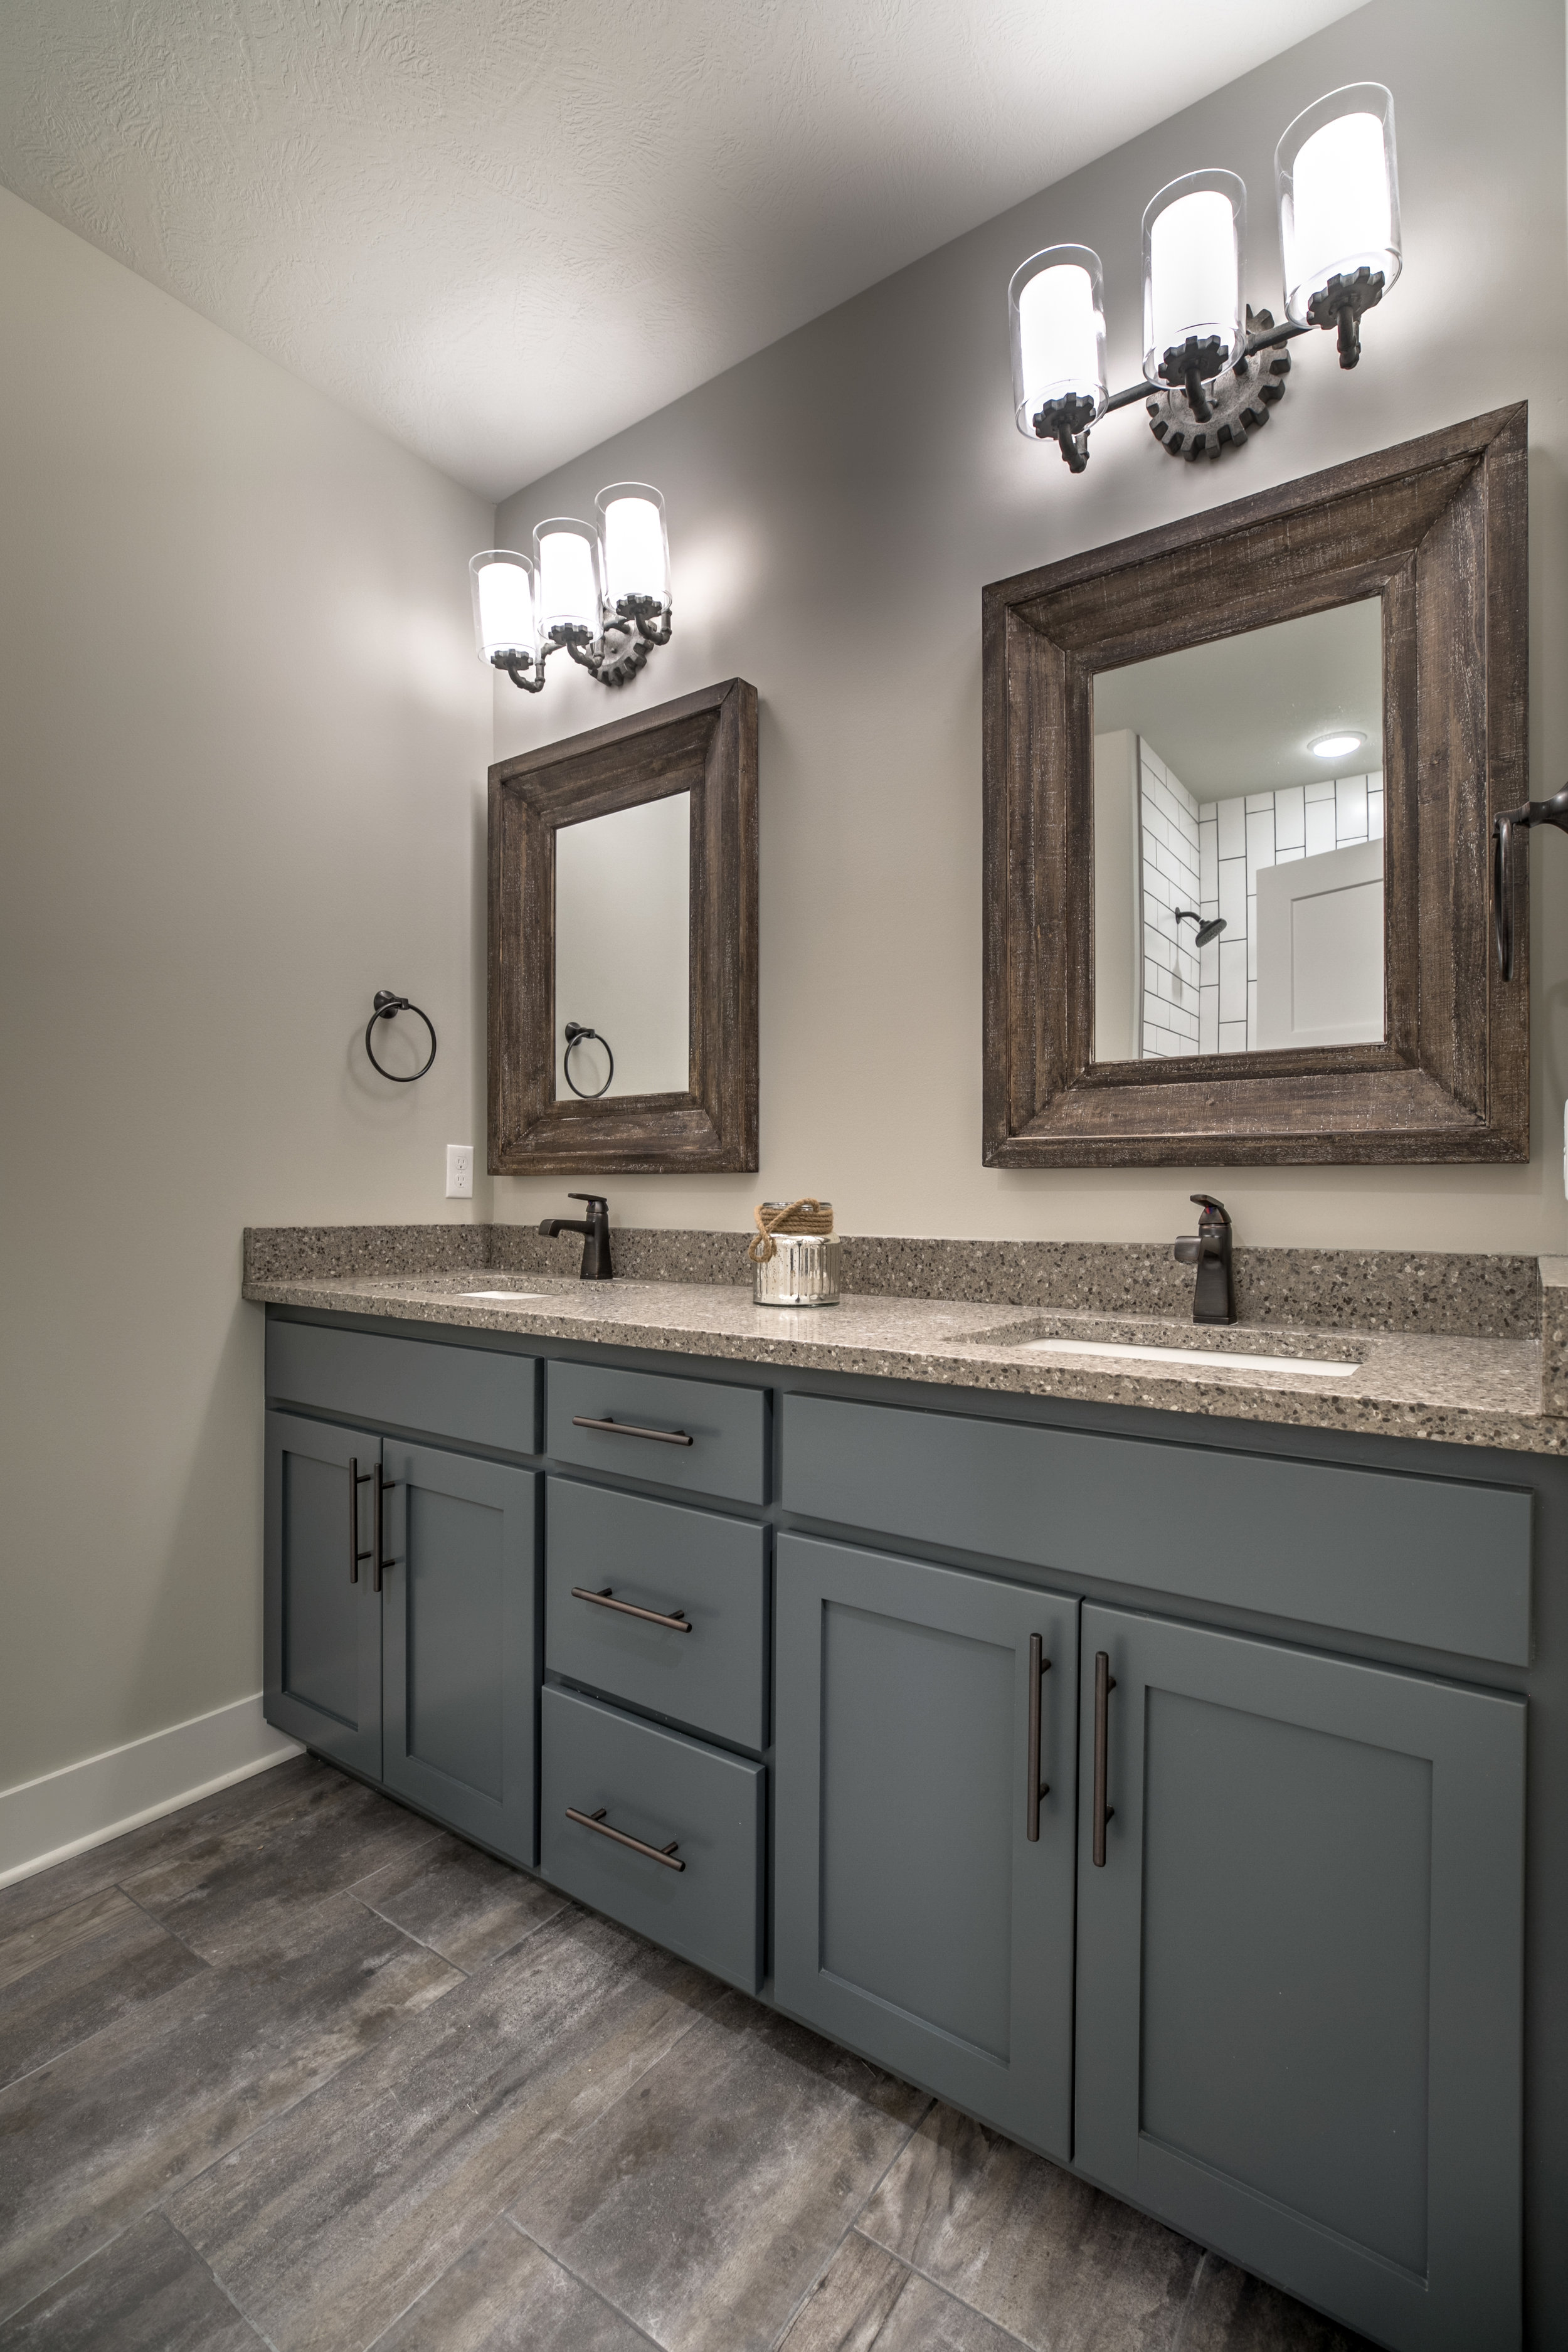 The Downstairs Bathroom | Laid Back Lifestyle